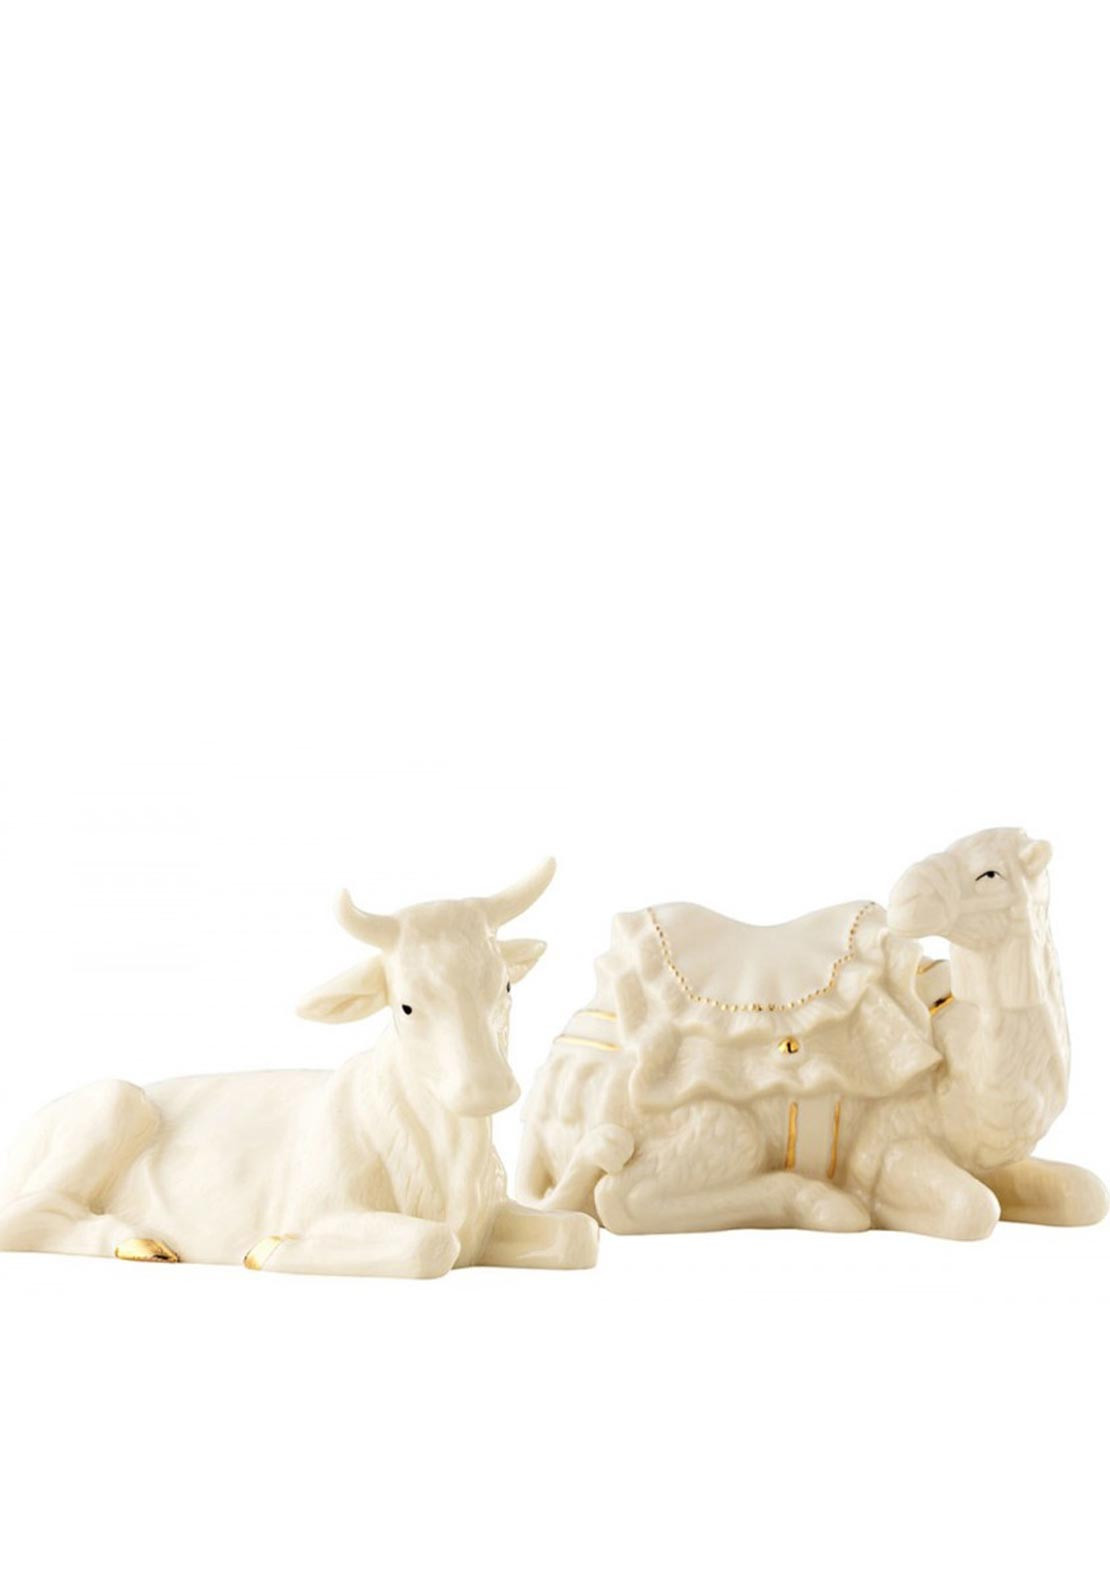 Belleek Christmas Manger Set includes Ox & Camel Ornaments